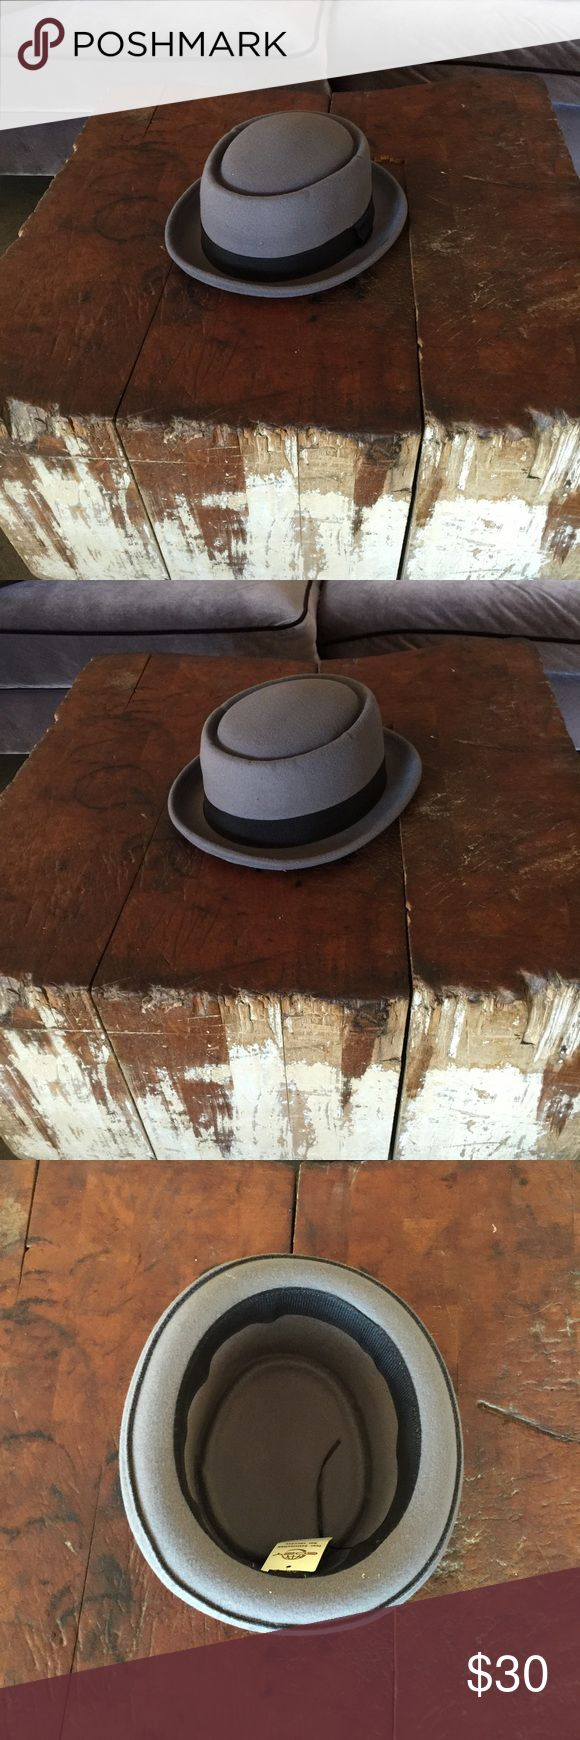 New Men's Walter White Porkpie Fedora Hat L/XL New Men's Hemming Walter White Fedora Hat. 100% Polyester. Firm on price, please no offers. I own an upscale men's store in Las Vegas and ship within 1 business day of your order. See boutique and closet for more goods. Thanks, Rich Accessories Hats